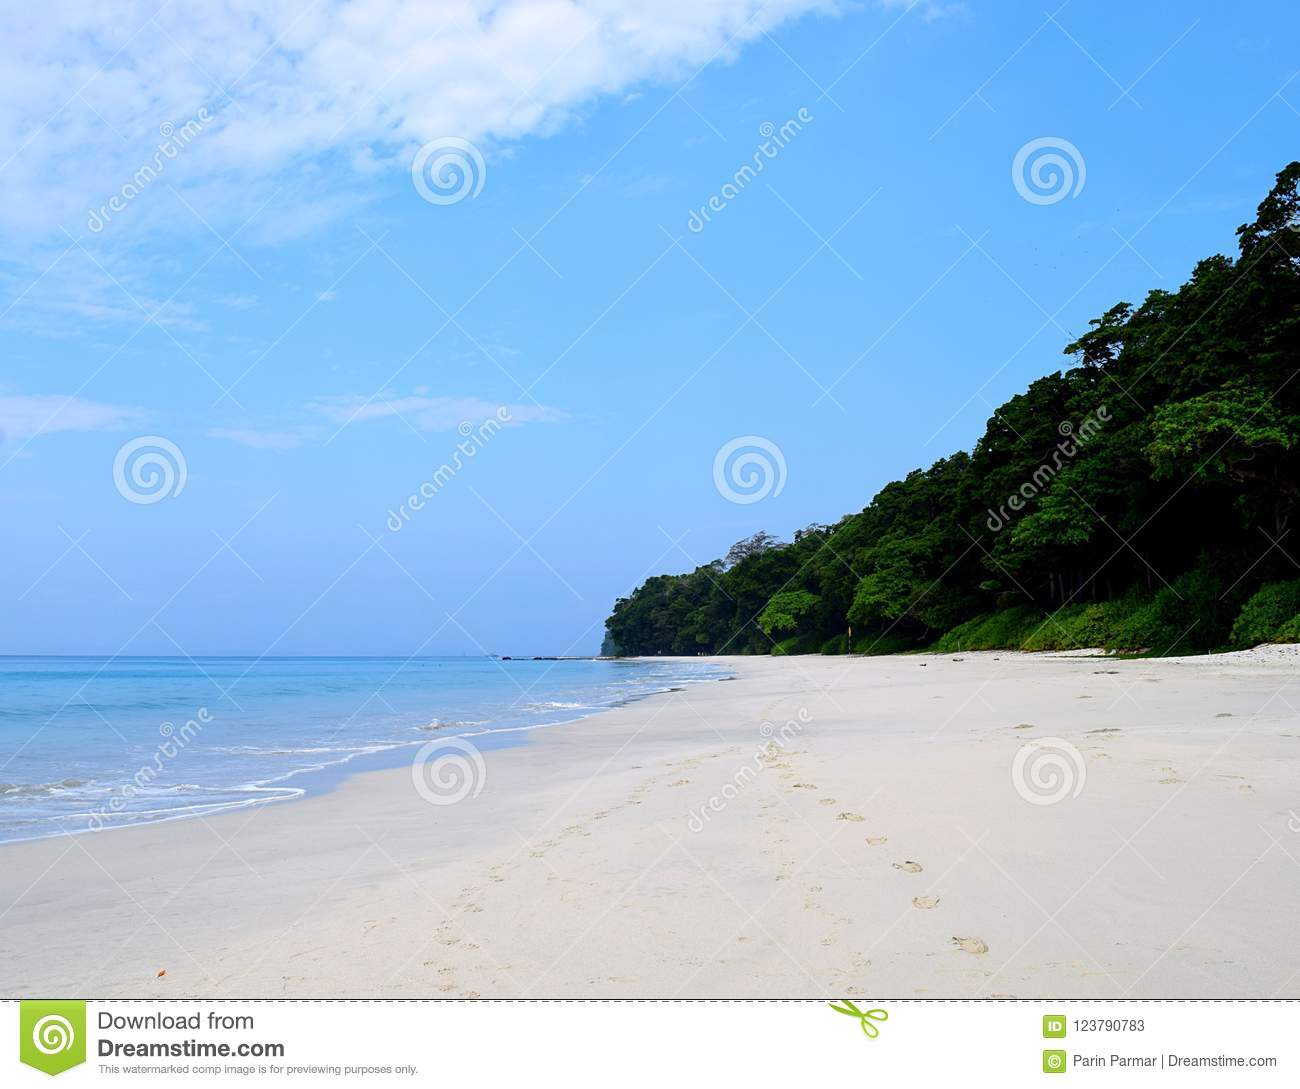 Havelock Island: Clean White Sandy Beach And Coastal Green Plants